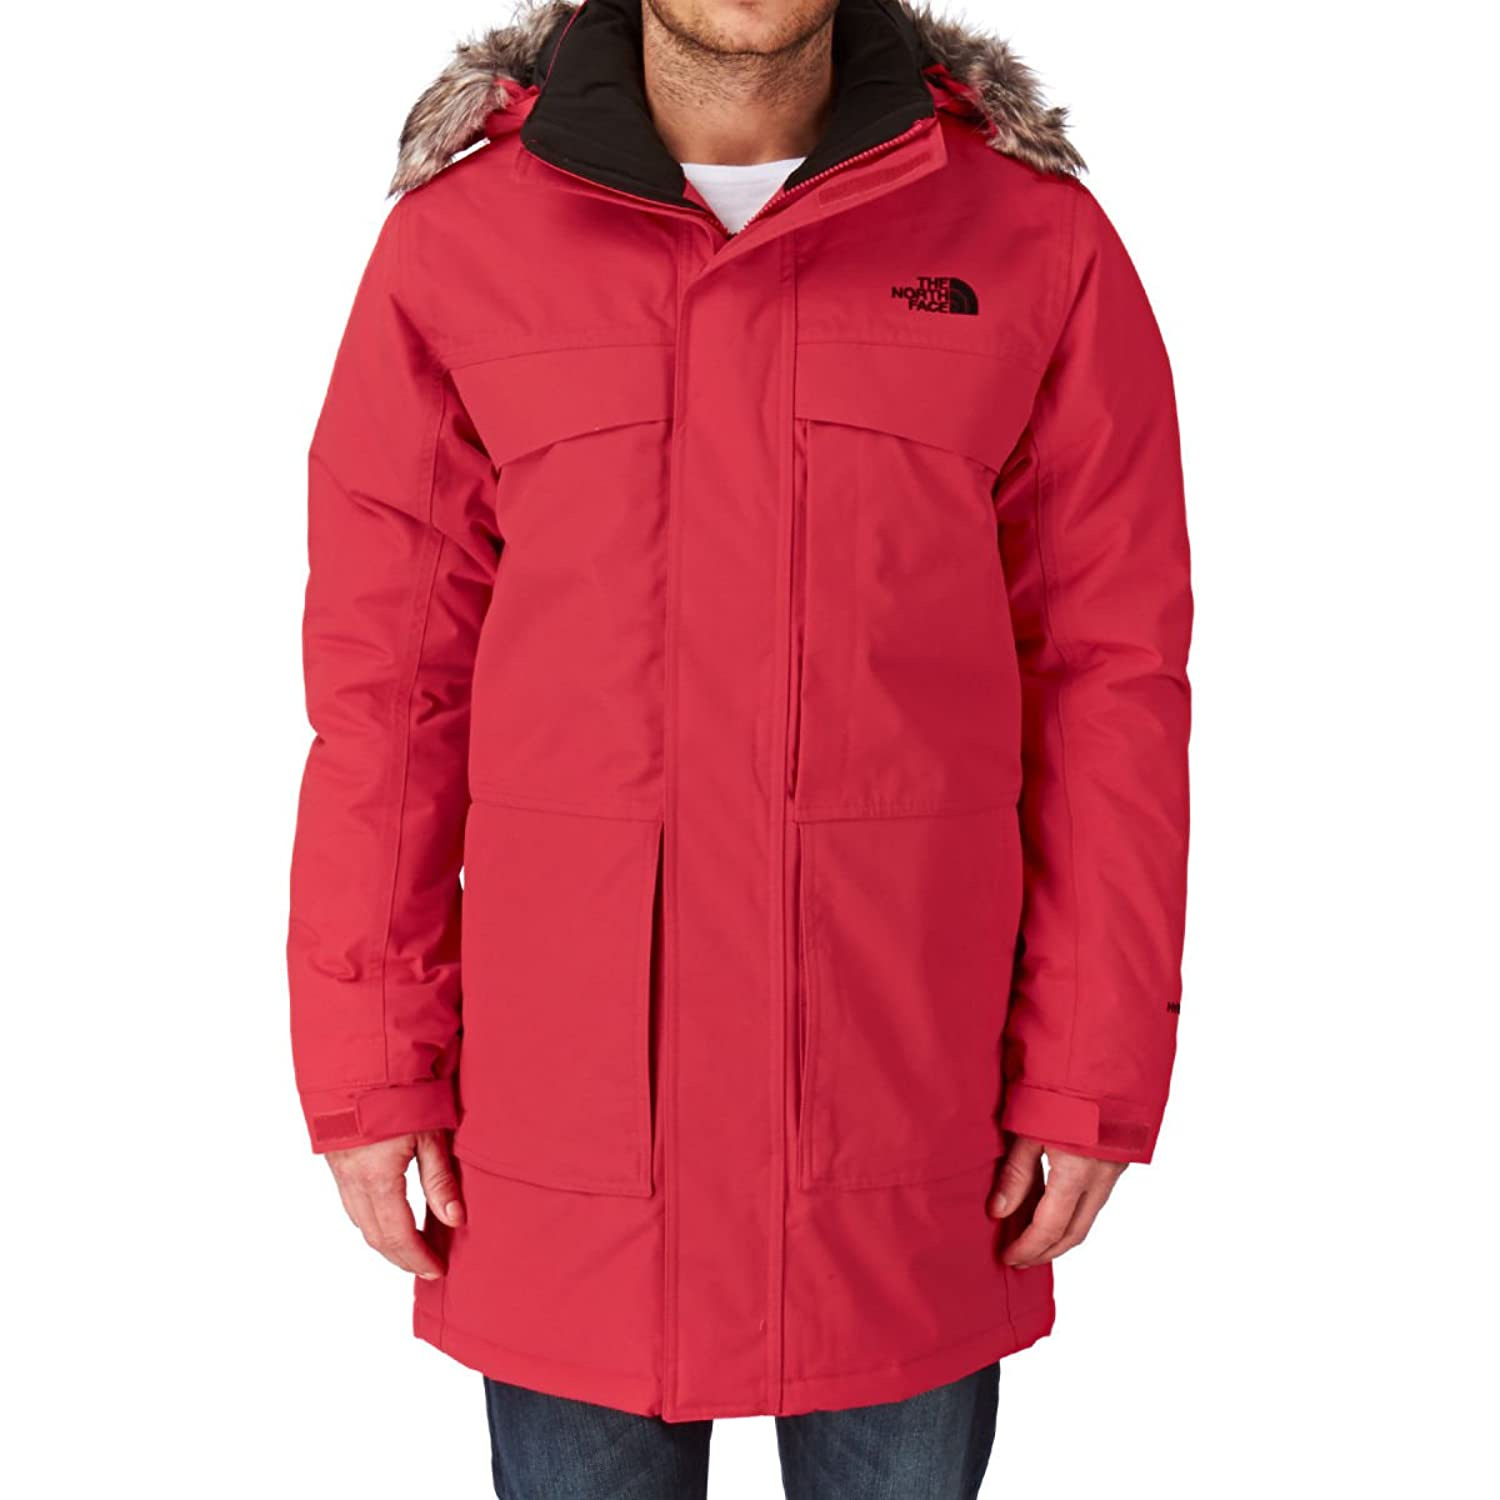 The North Face Nanavik Jacket – Tnf Red günstig kaufen